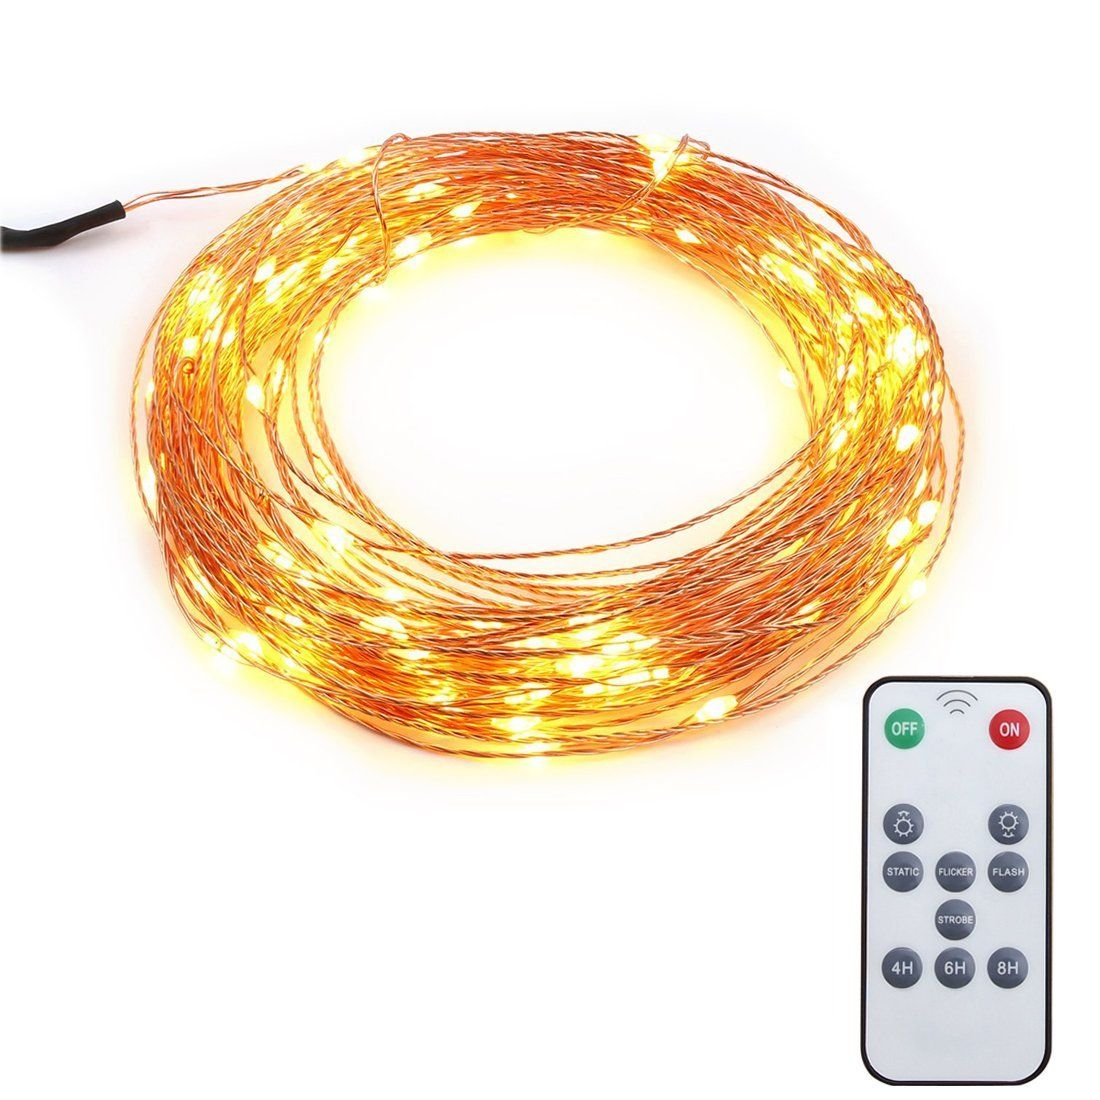 Updated Version]TopEs Dimmable Led String Lights, Waterproof Cooper ...